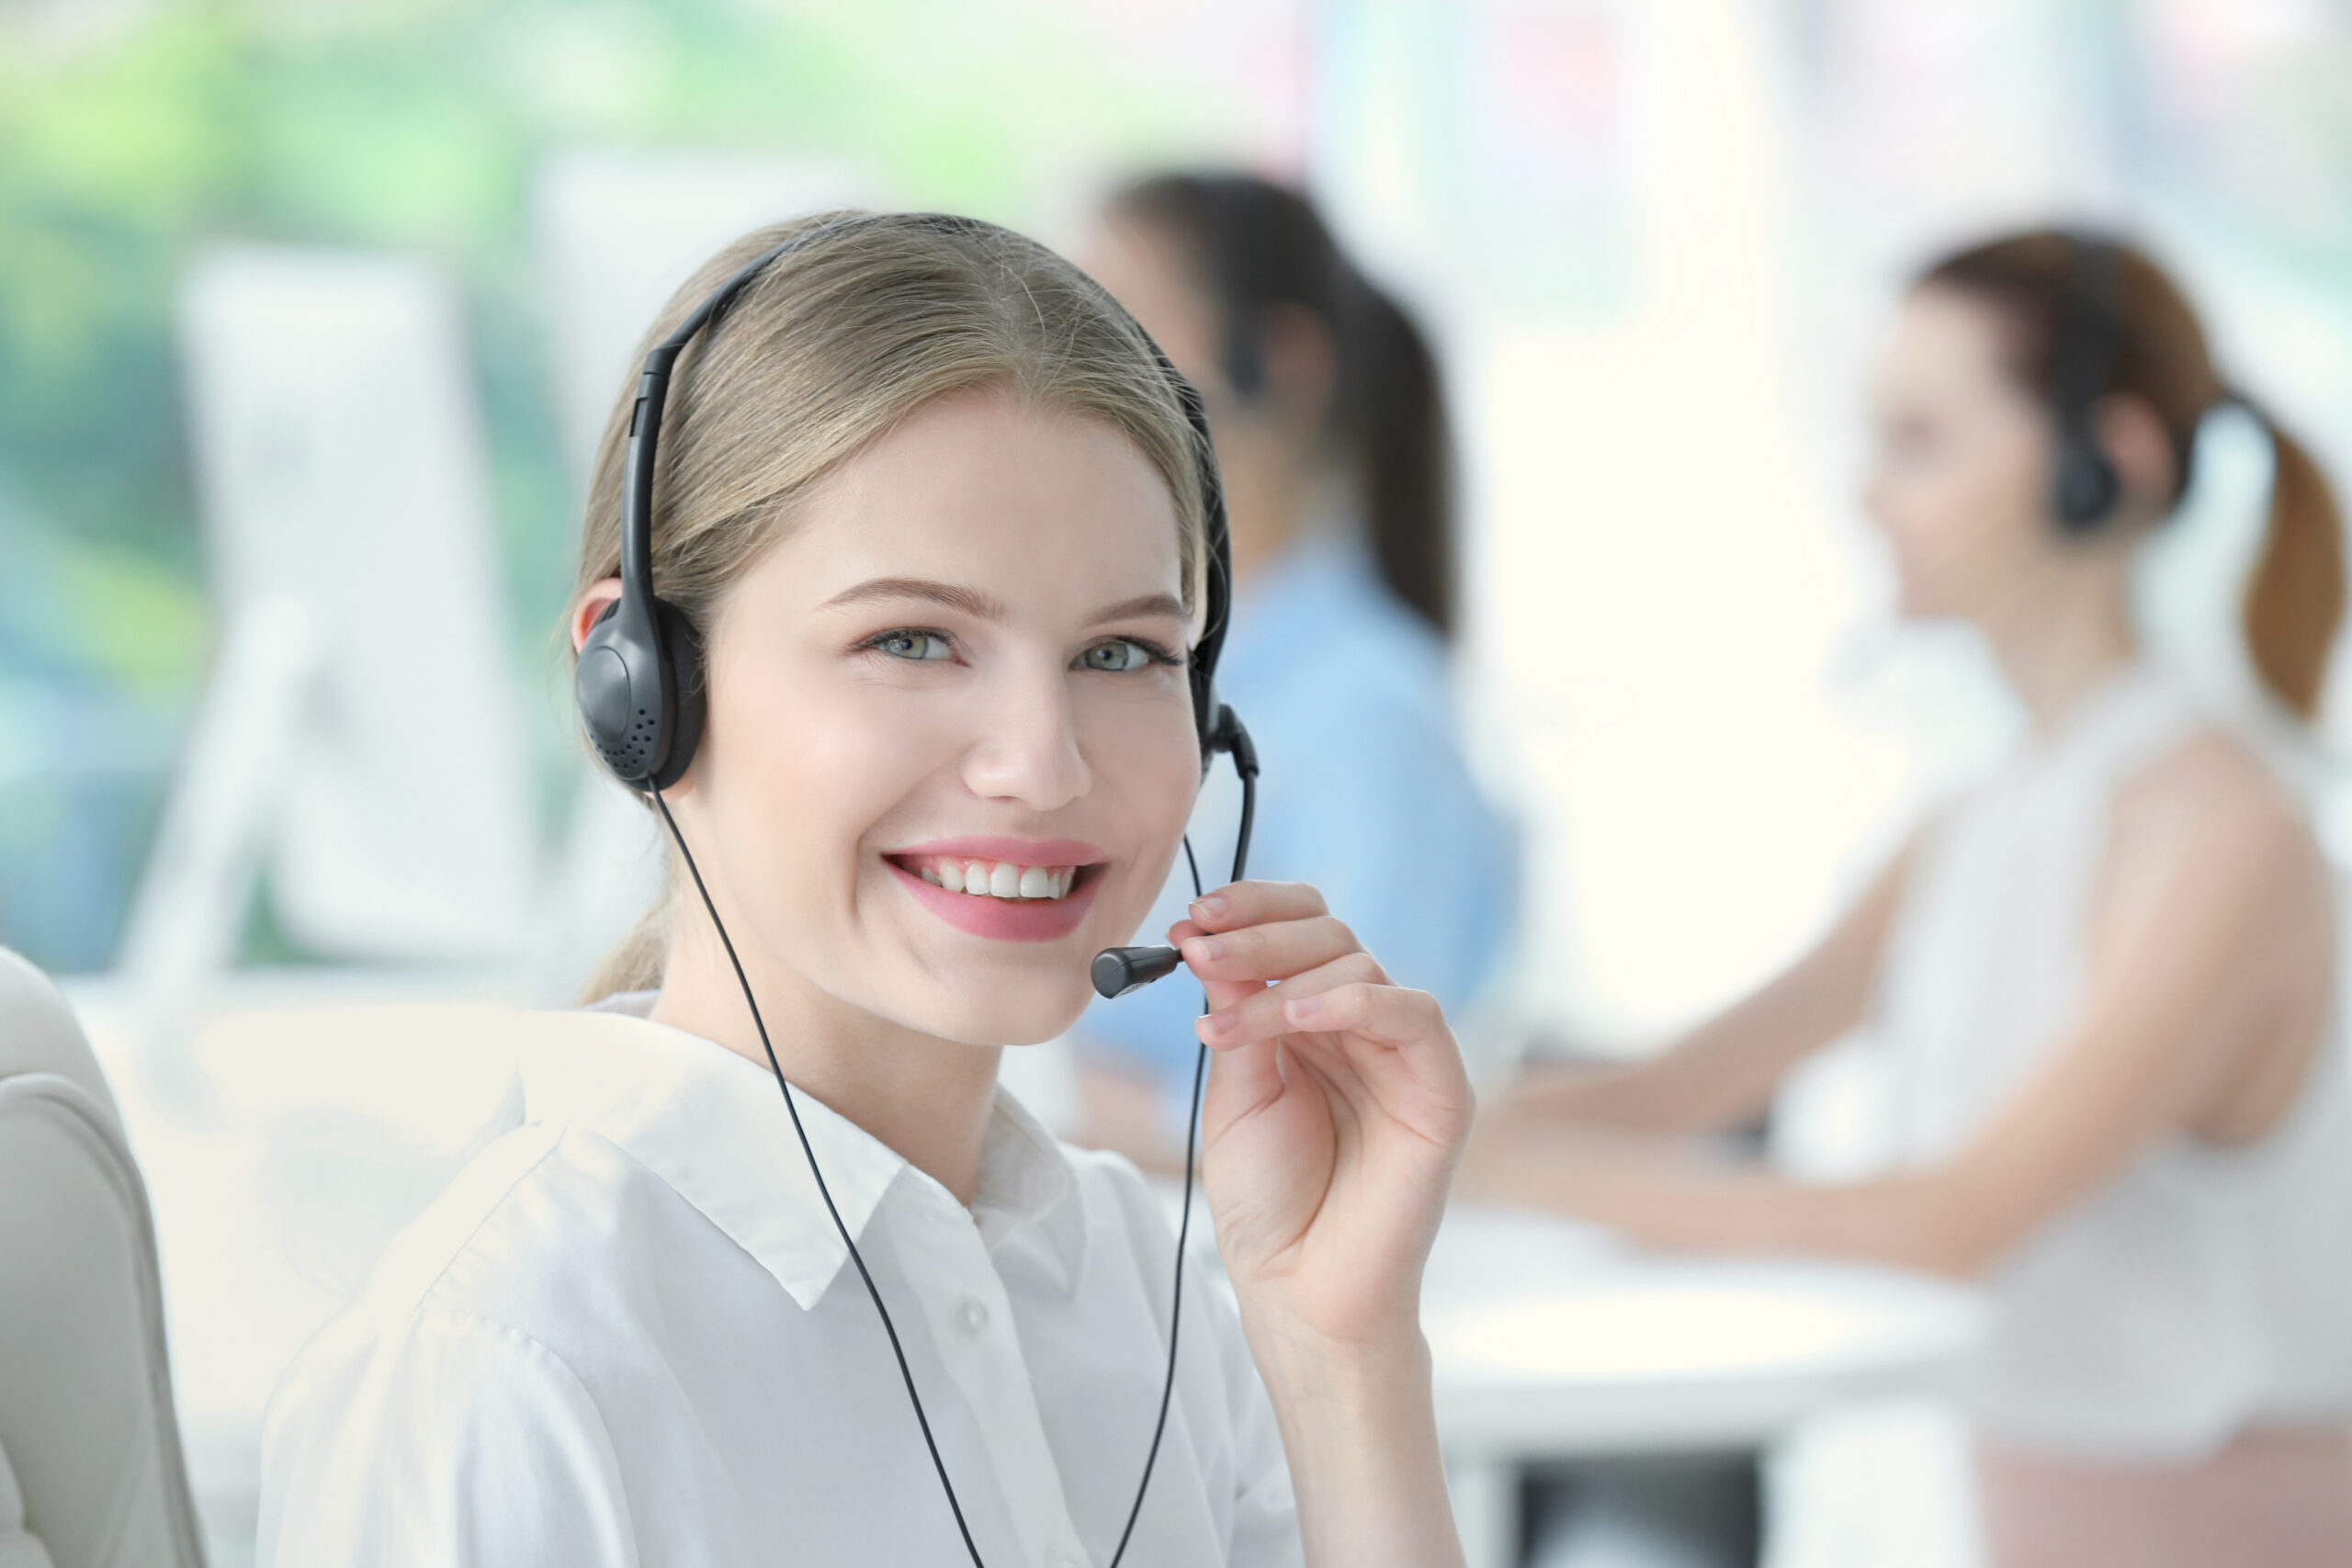 smiling female answering service receptionist